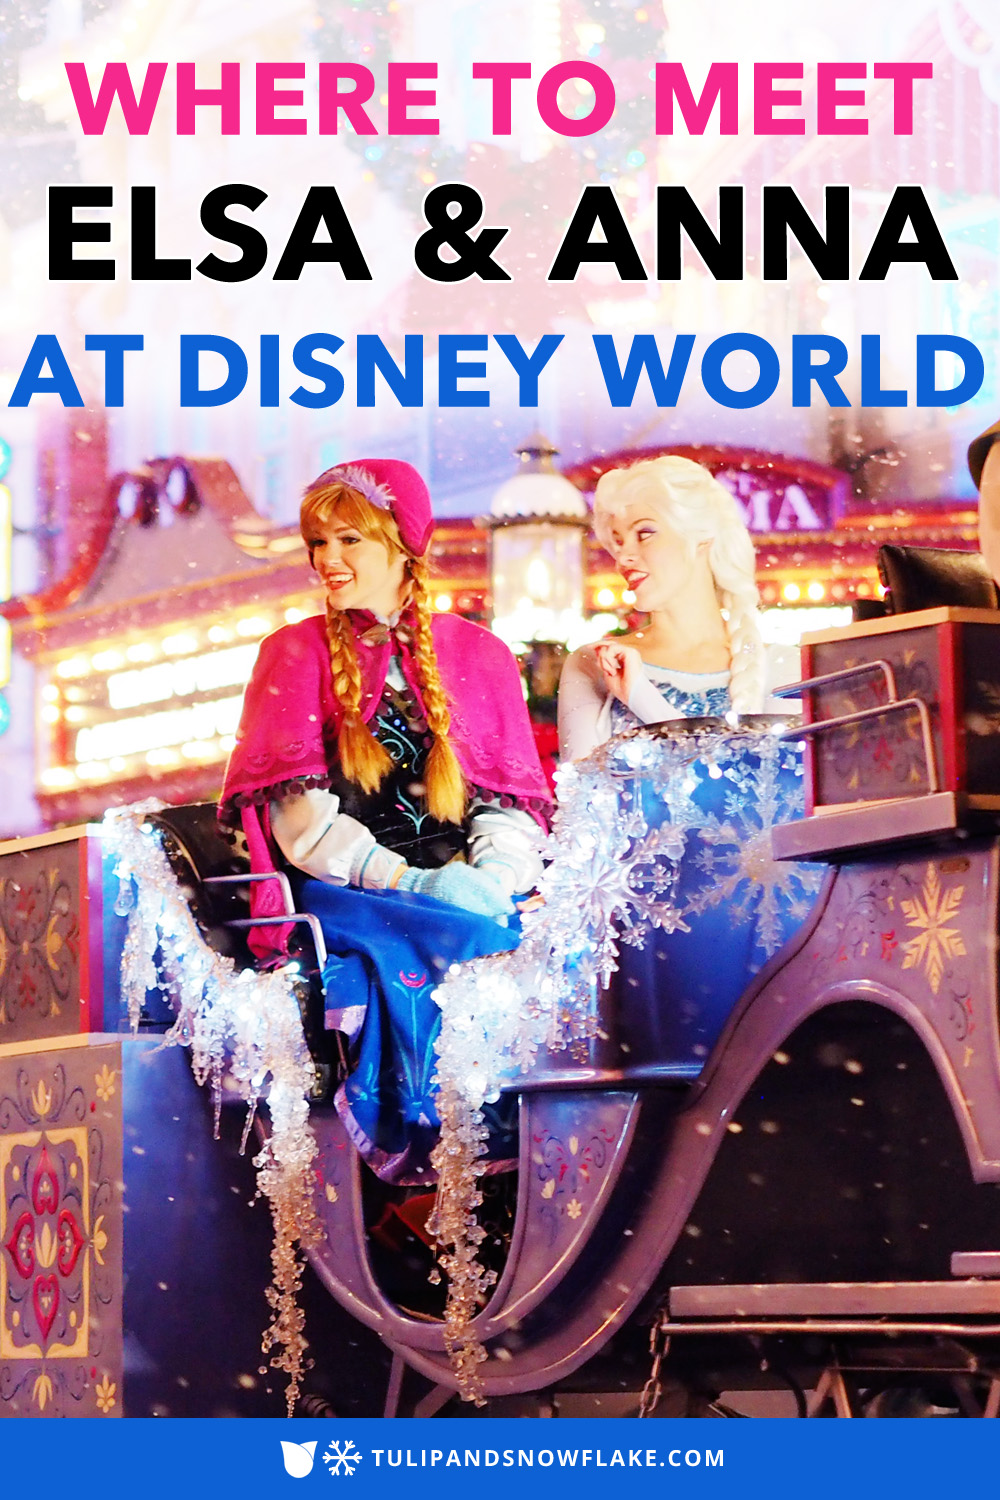 Where to Meet Elsa and Anna at Disney World